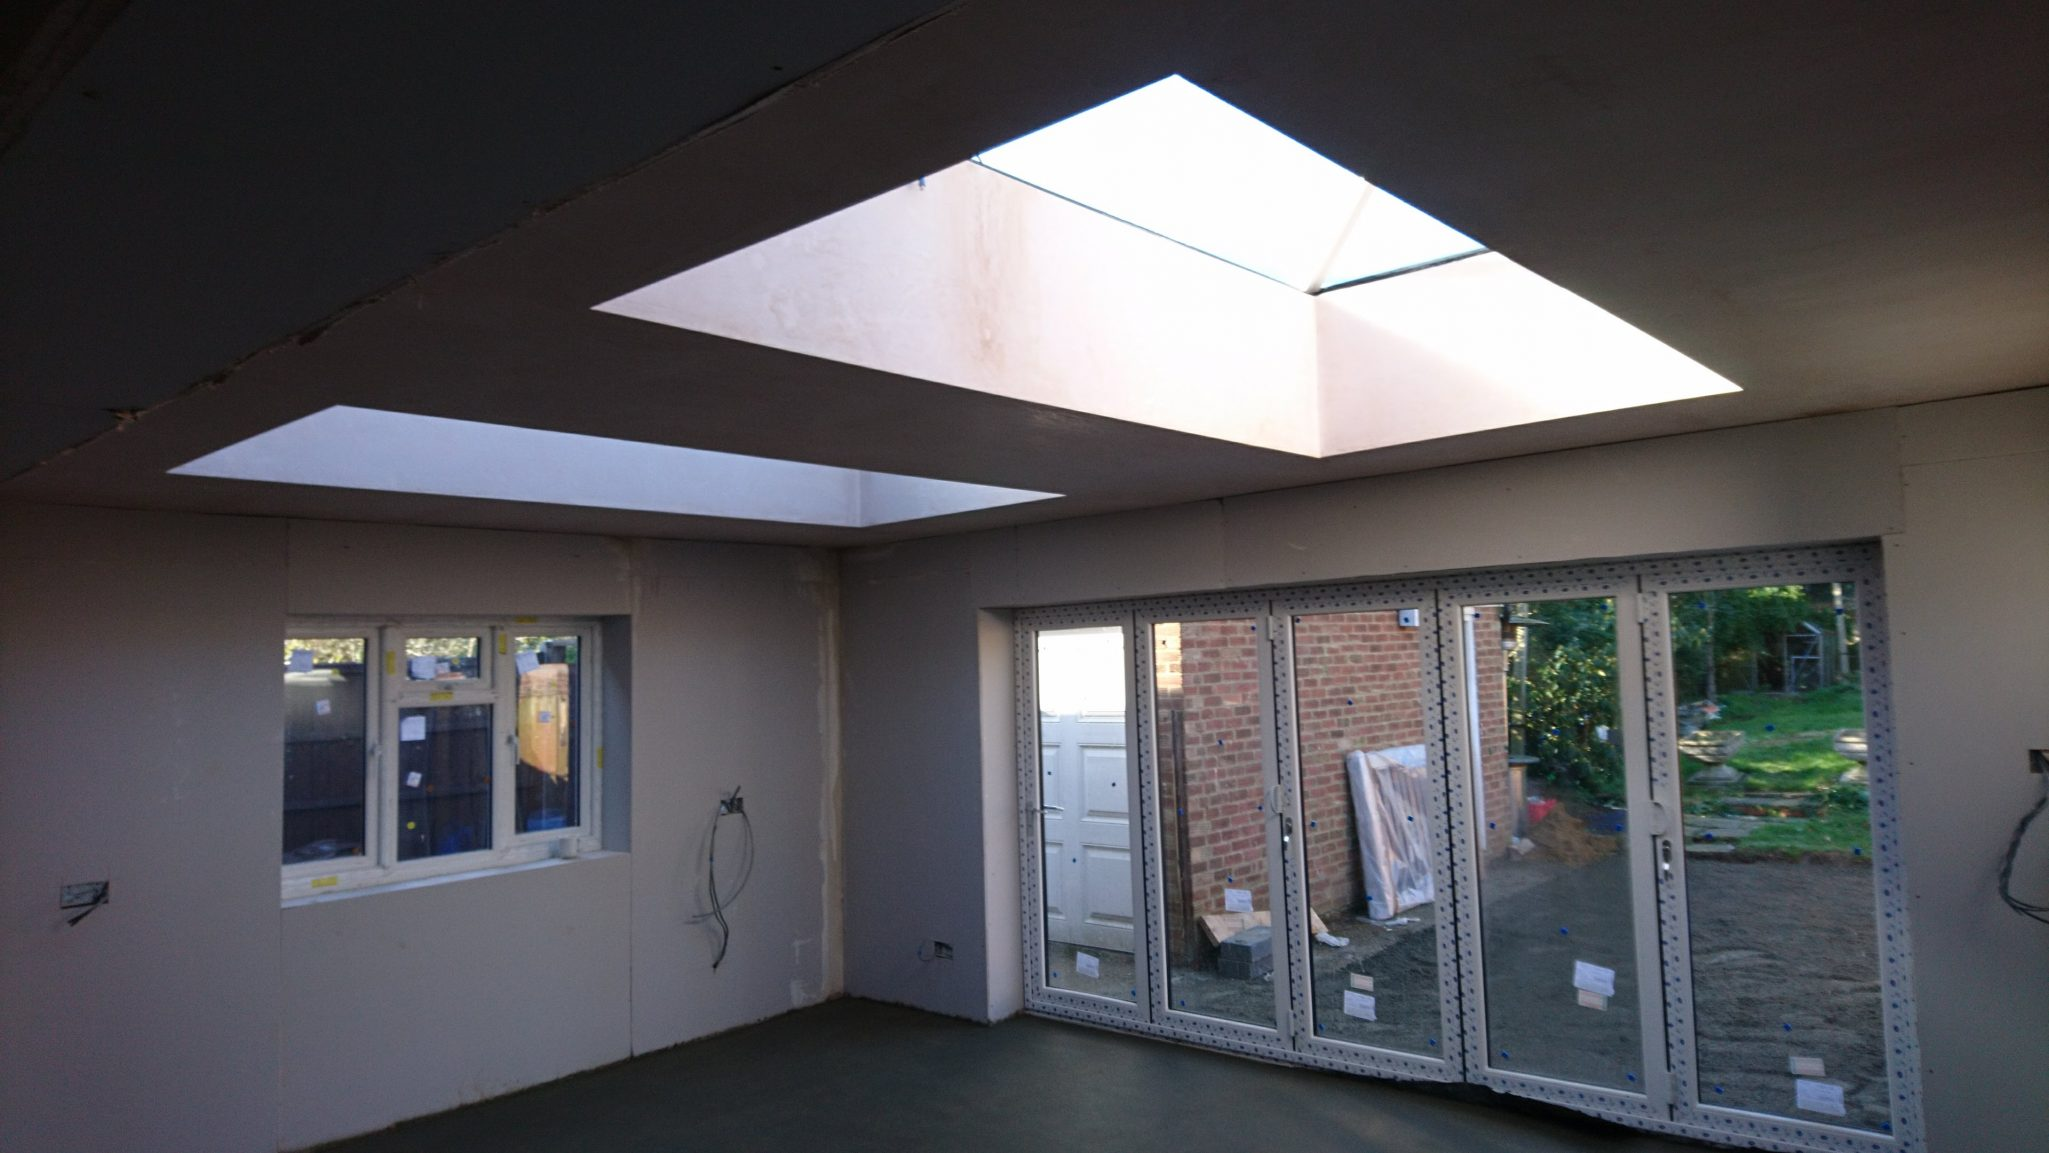 Chalet Bungalow Conversion, Shenfield – Winter / Spring 2018 With a new baby on the way, our clients decided to renovate their 2 bedroom chalet Bungalow in Shenfield to a 4…